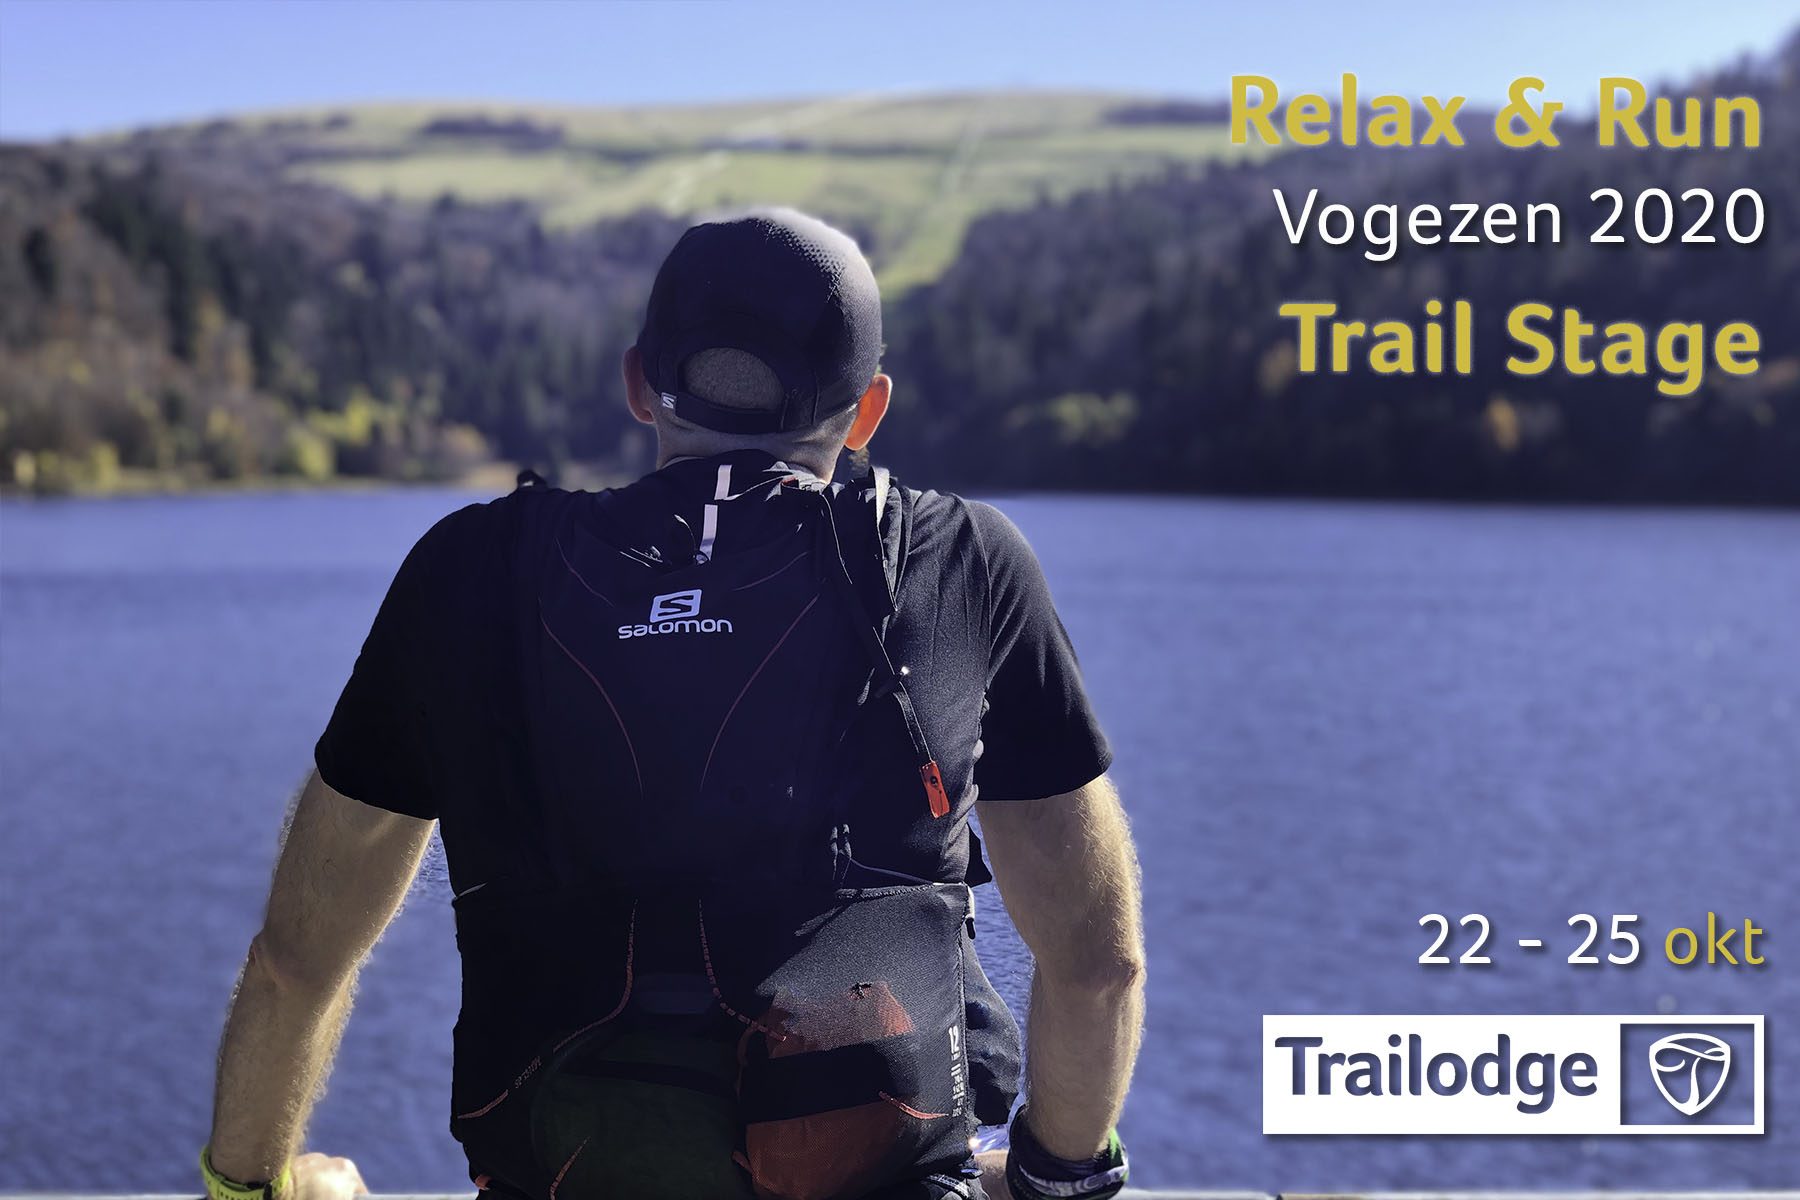 Trailodge Stage Vogezen 2020